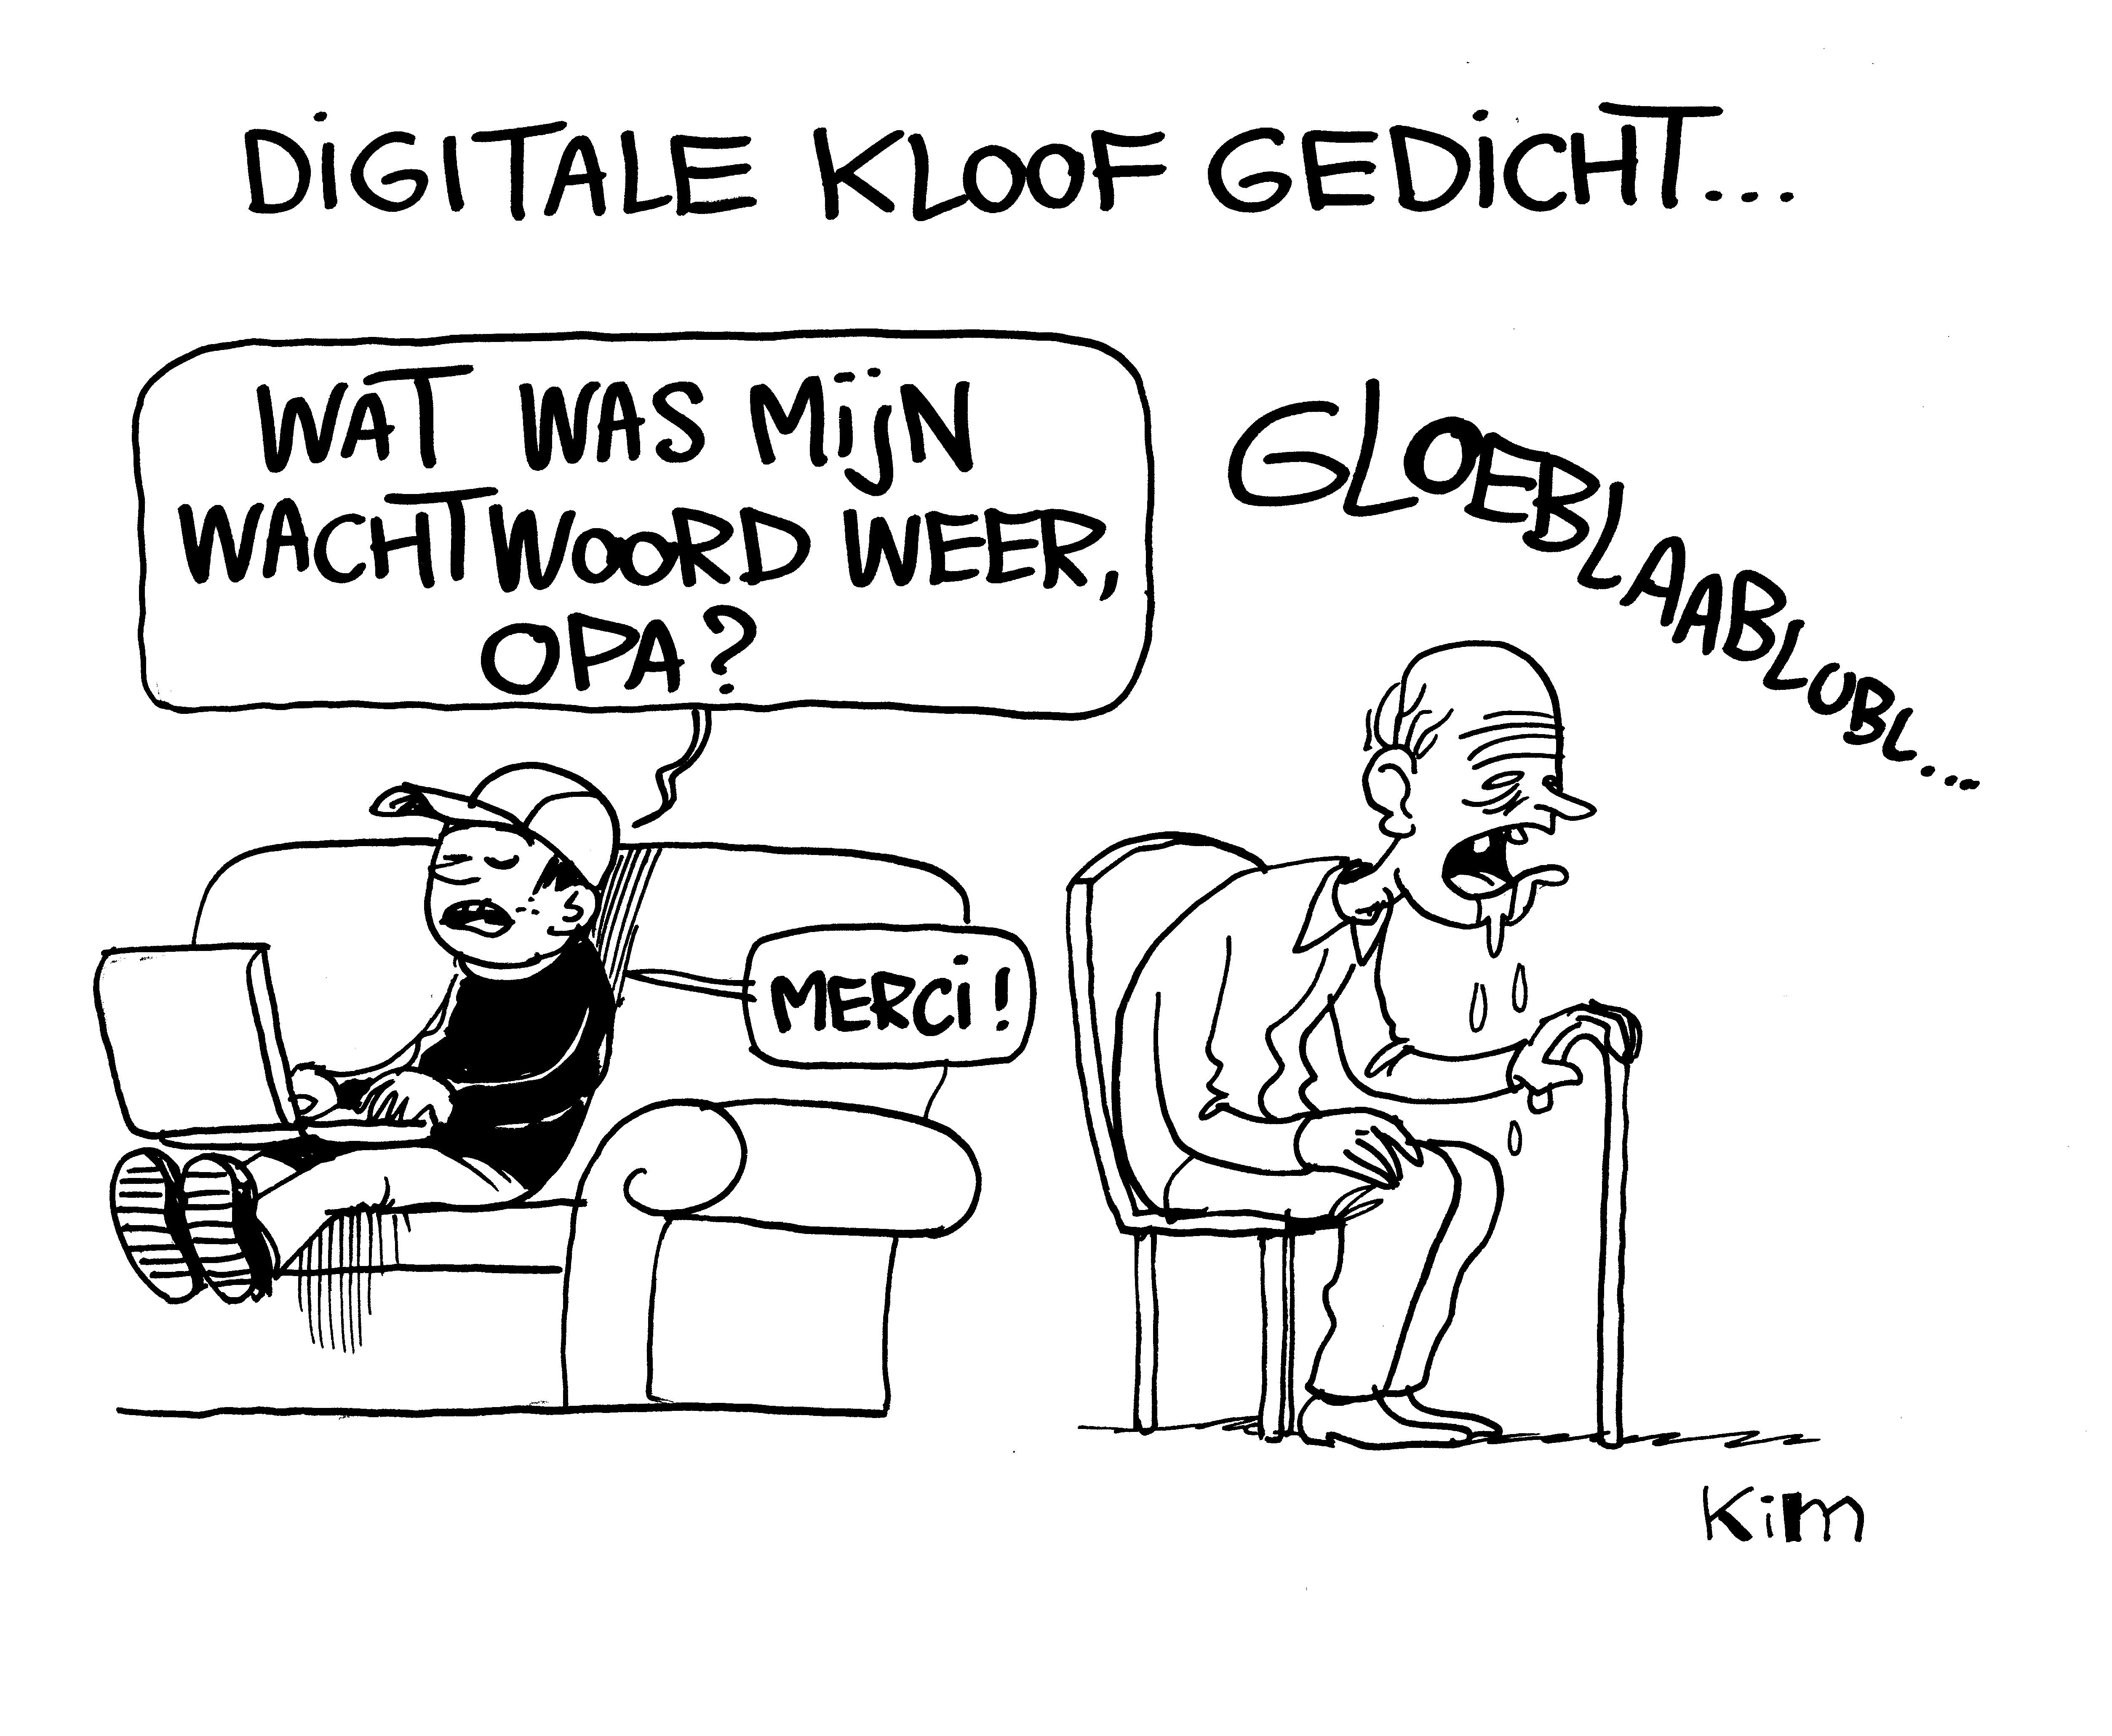 Digitale kloof gedicht...